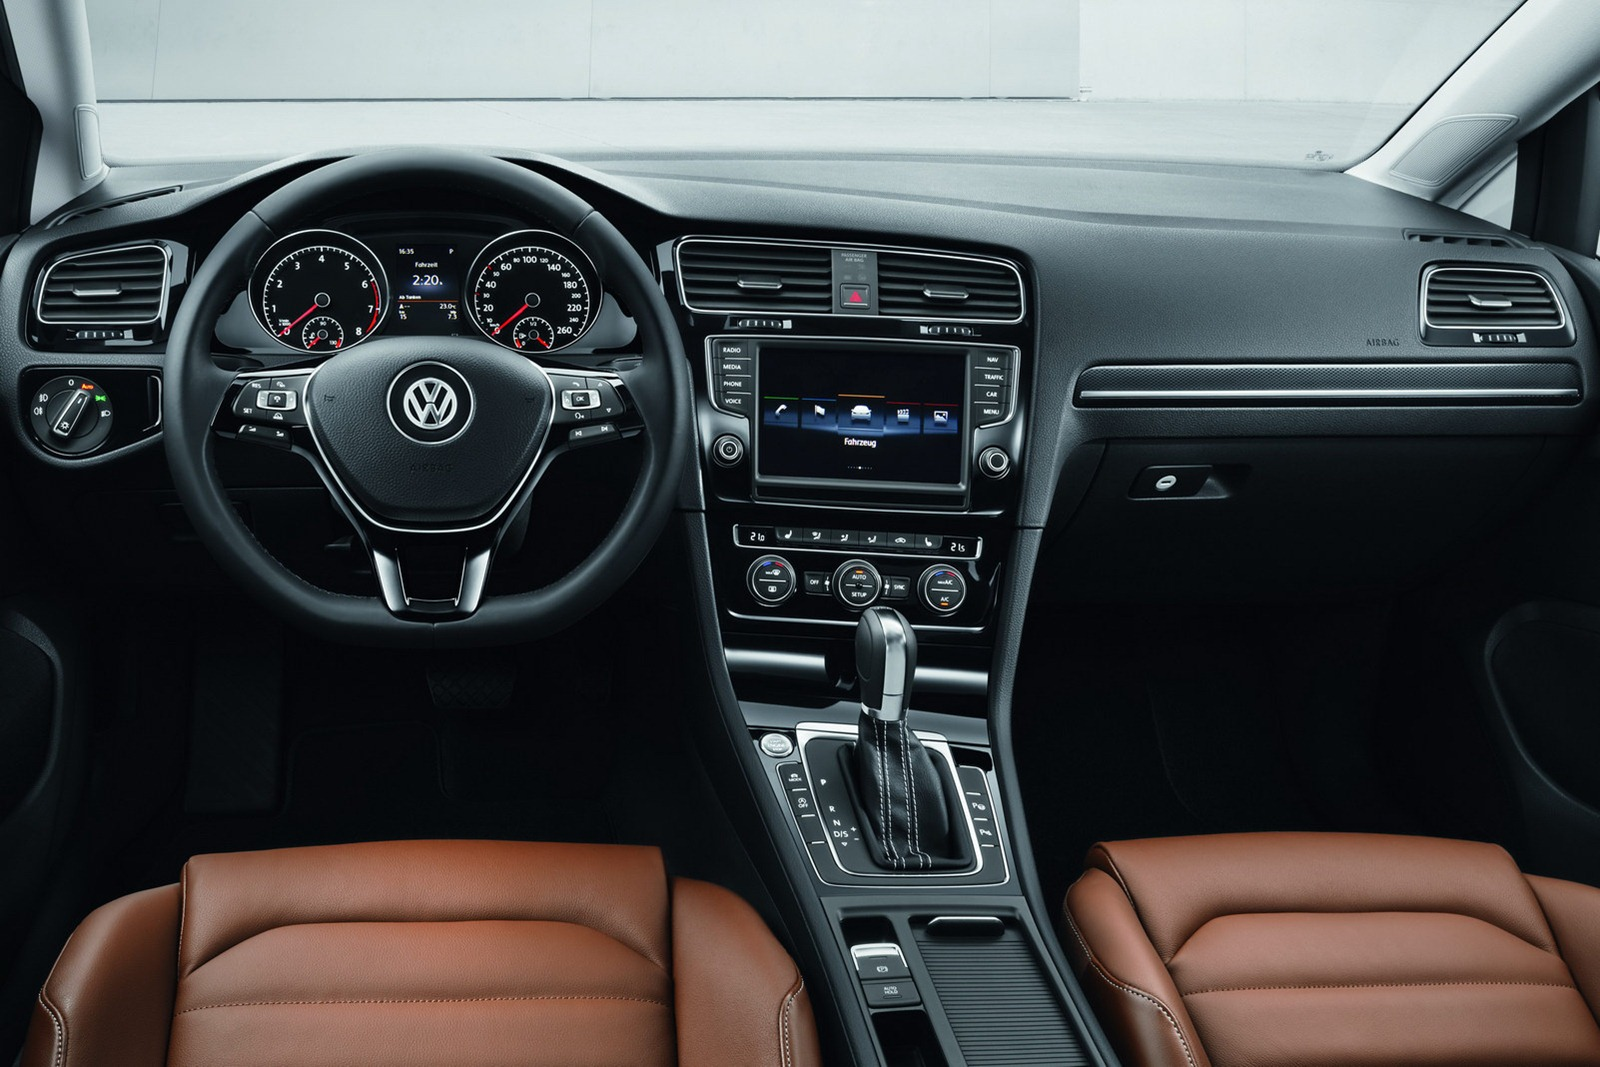 2013 Vw Mk7 Golf Interior 4 Forcegt Com